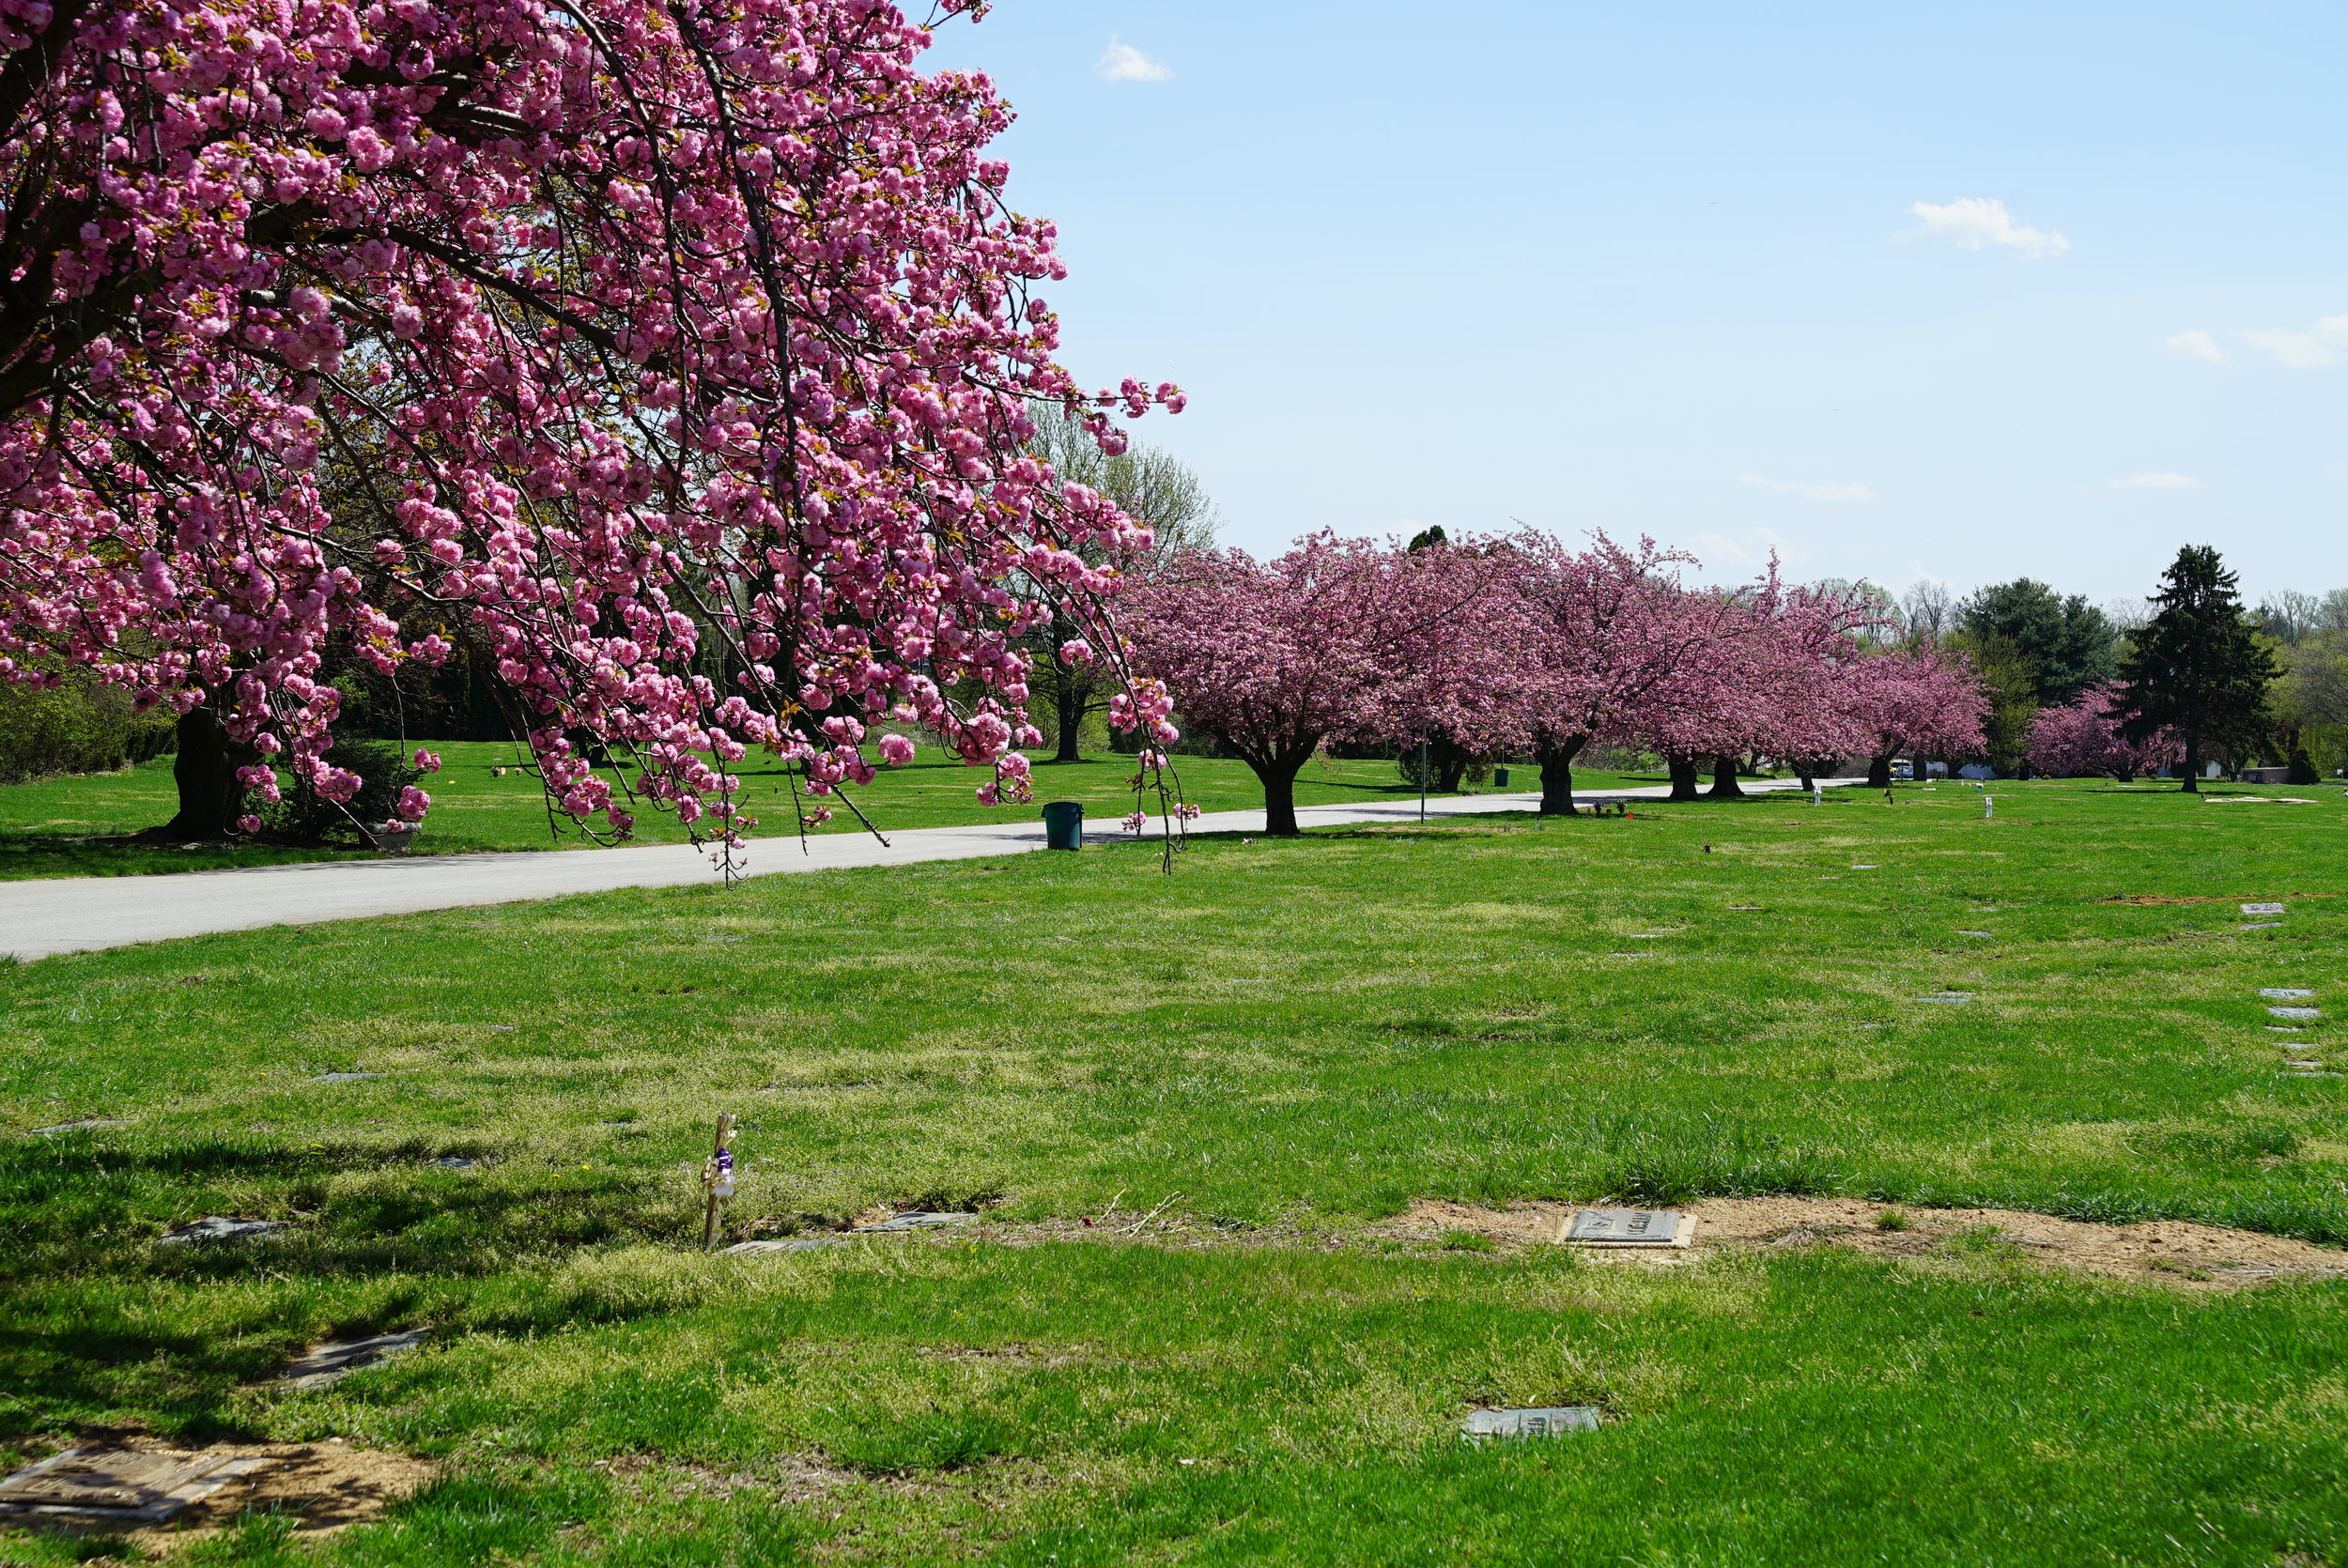 The view immediaitely inside Rolling Green Memorial Park Cemetery, April 2017. West Chester, PA.